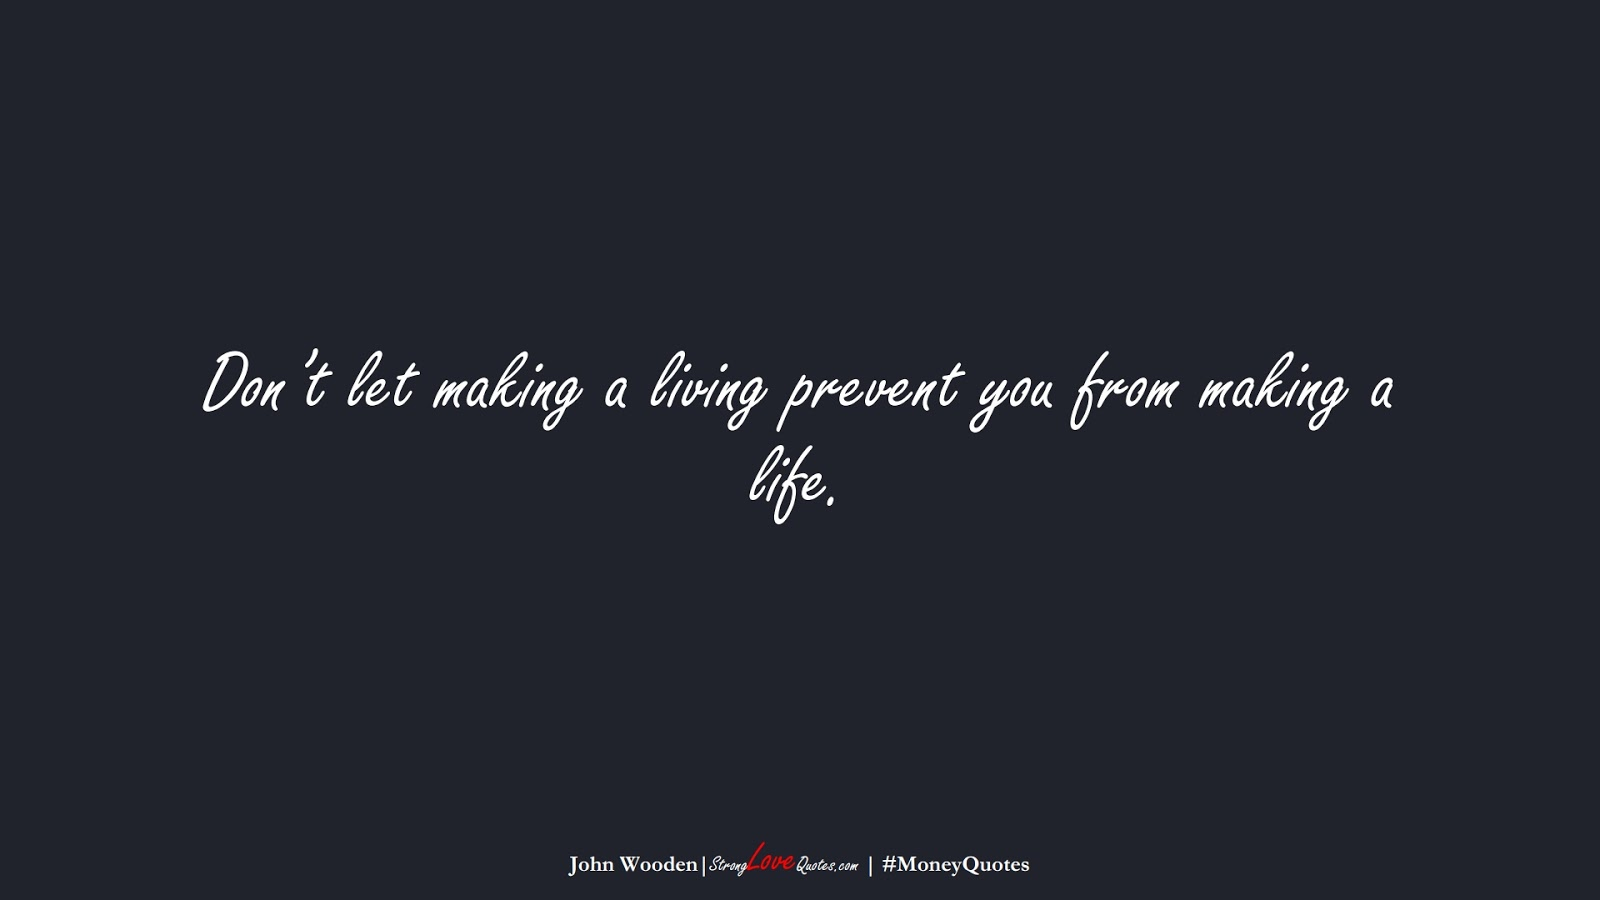 Don't let making a living prevent you from making a life. (John Wooden);  #MoneyQuotes